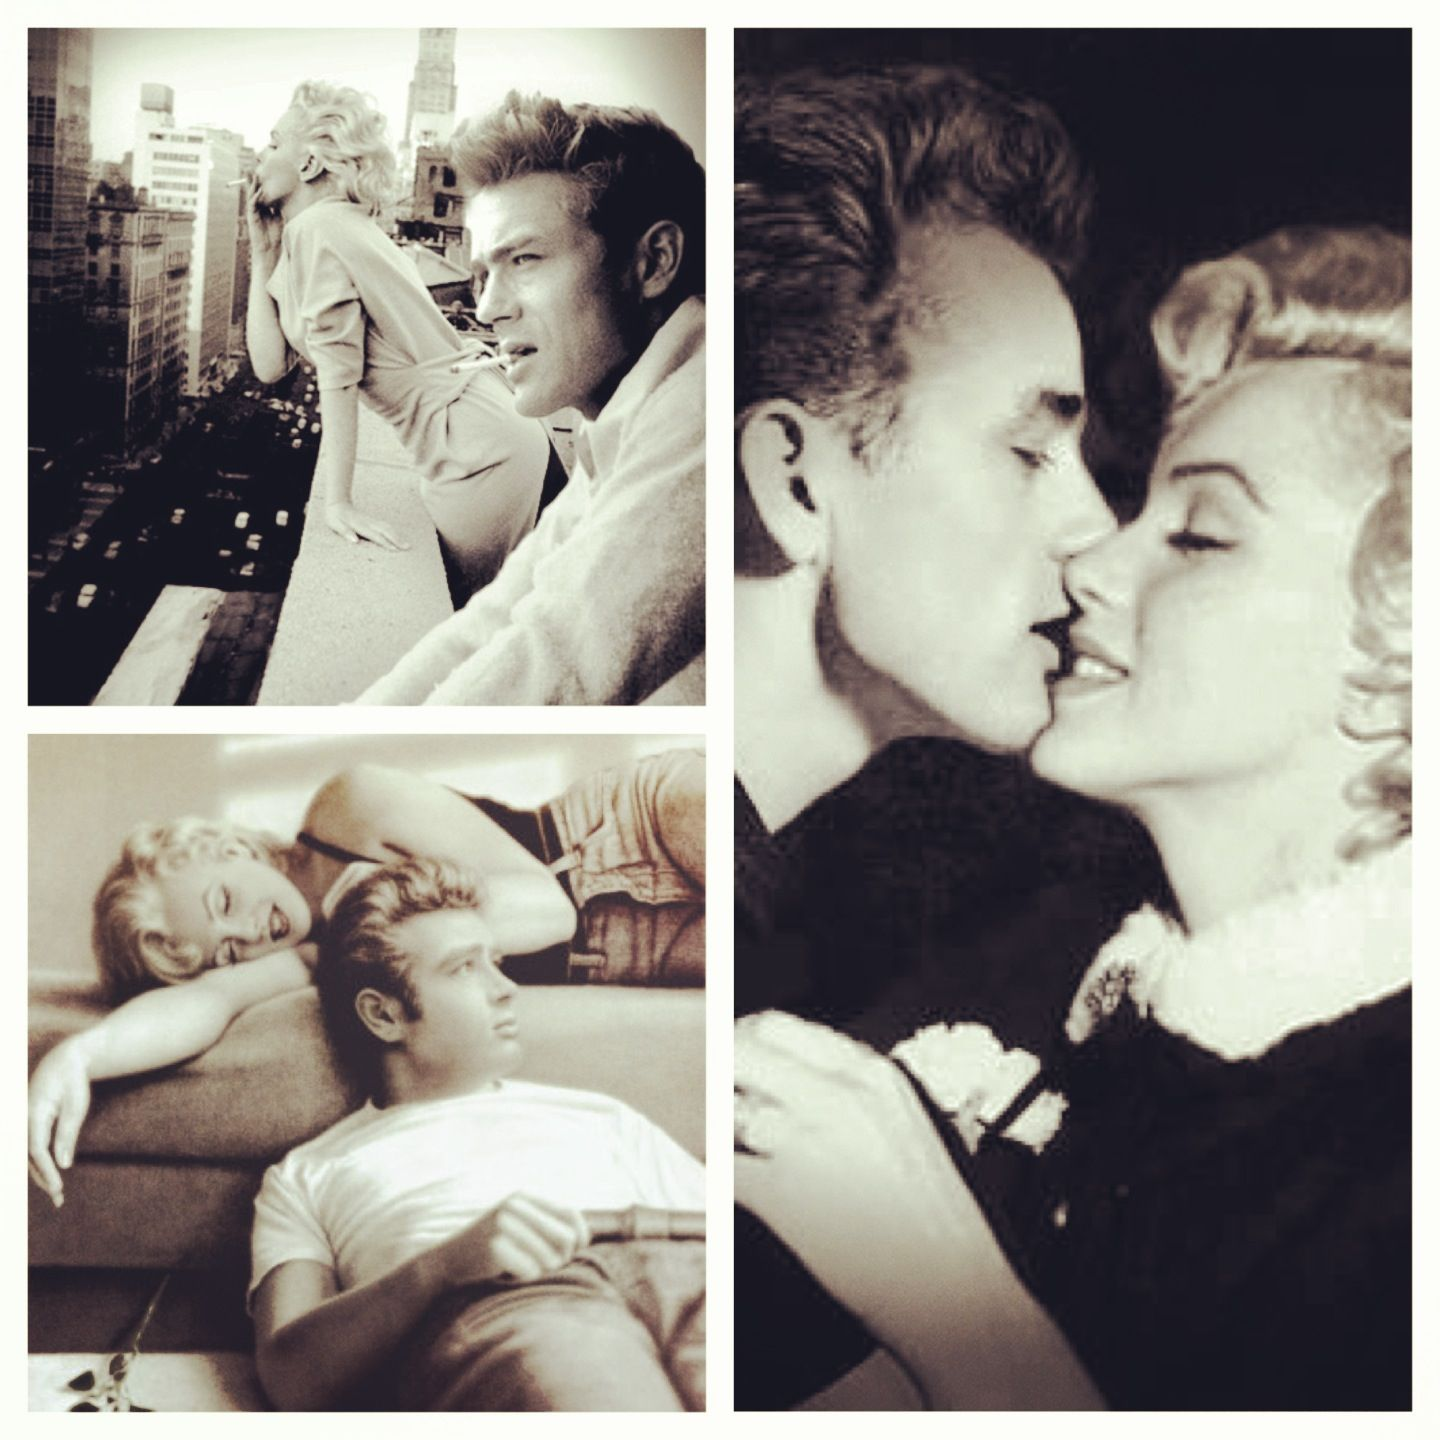 James Dean Marilyn Monroe Photo Manipulation By Brailliant